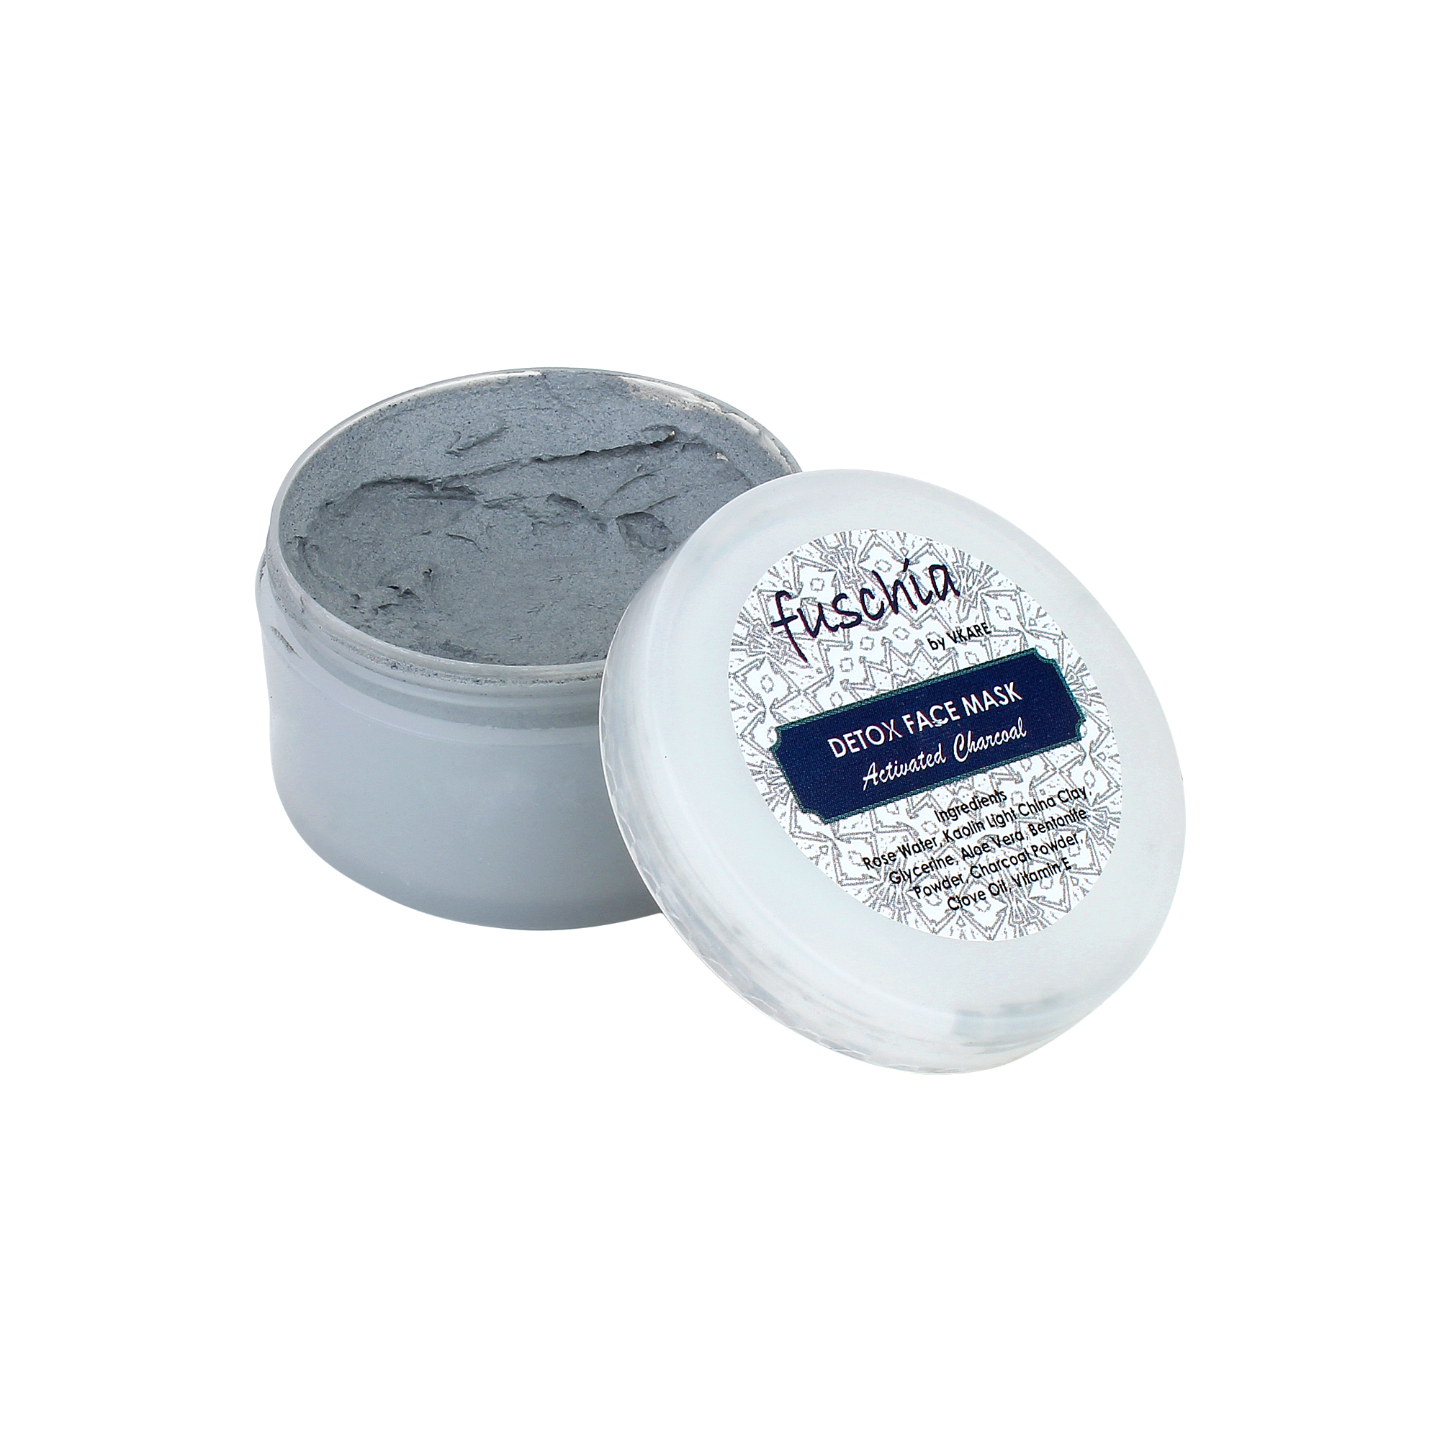 Fuschia Detox Face Mask - Activated Charcoal - 50 gm